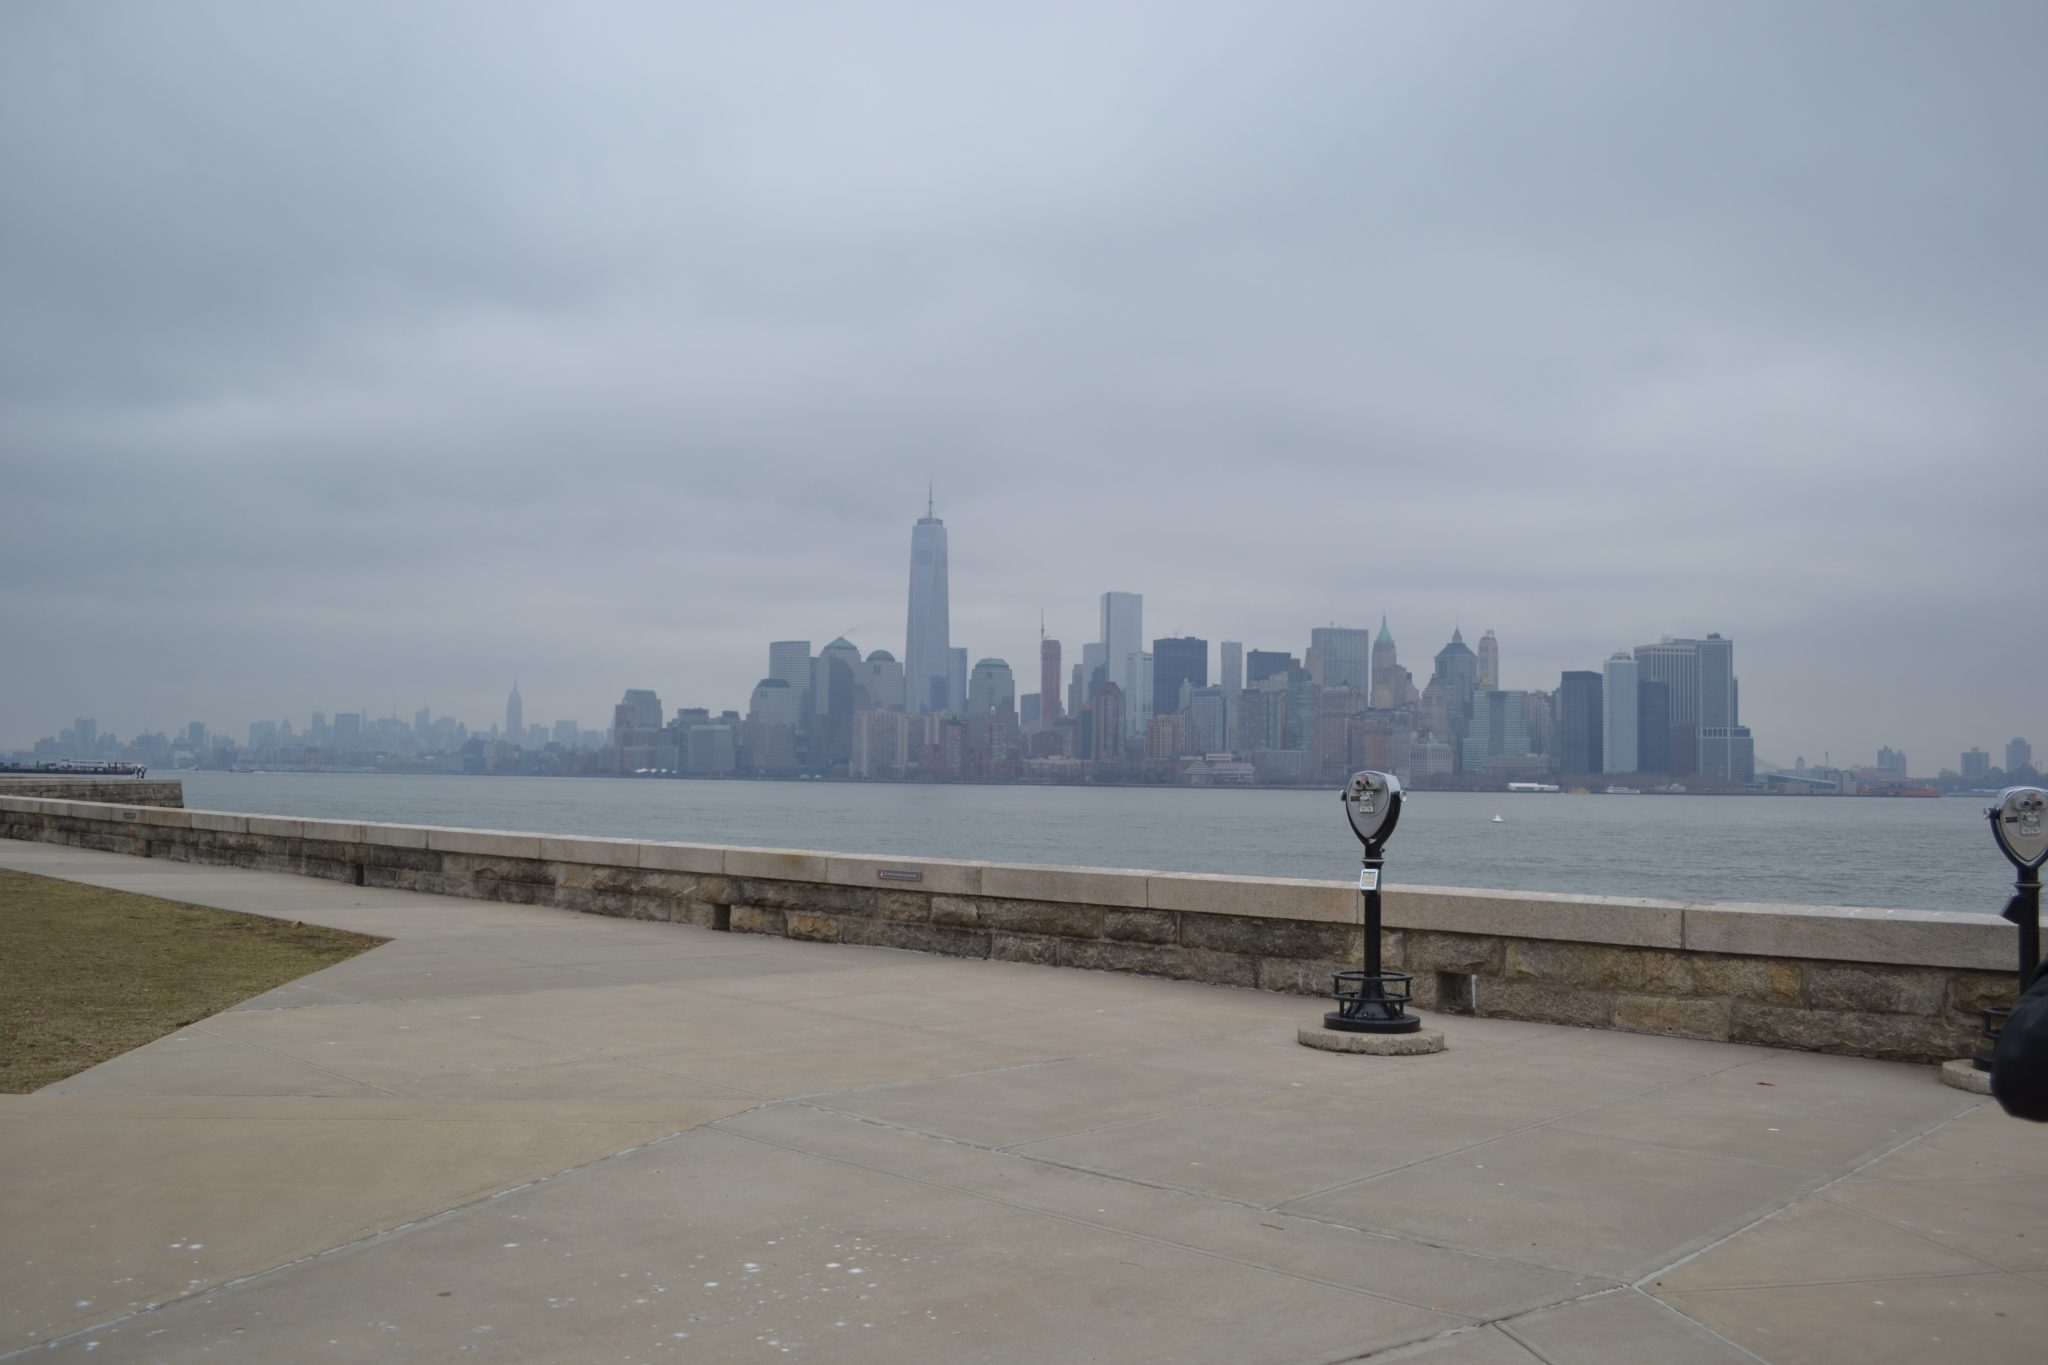 New York Part 4: Ellis Island & Statue of Liberty - dsc 05051